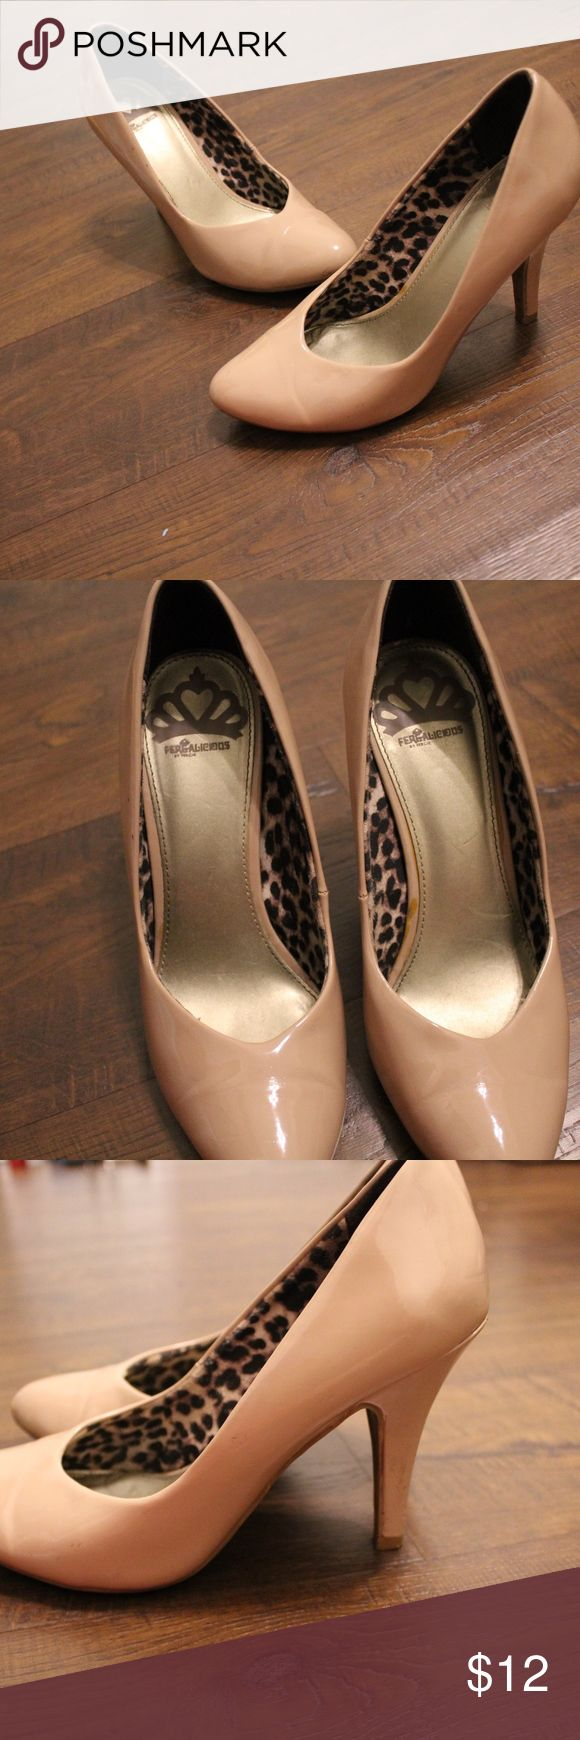 Tan Heels Patent Fake Leather These are tan fake patent leather material. They have an inside cheetah print but it is not visible. They are great and comfortable. I will rewash them if you buy. I just need to wipe them down to get some of the dirt off you see in the pictures. Love these heels! (I can lower price & please make bids) Shoes Heels